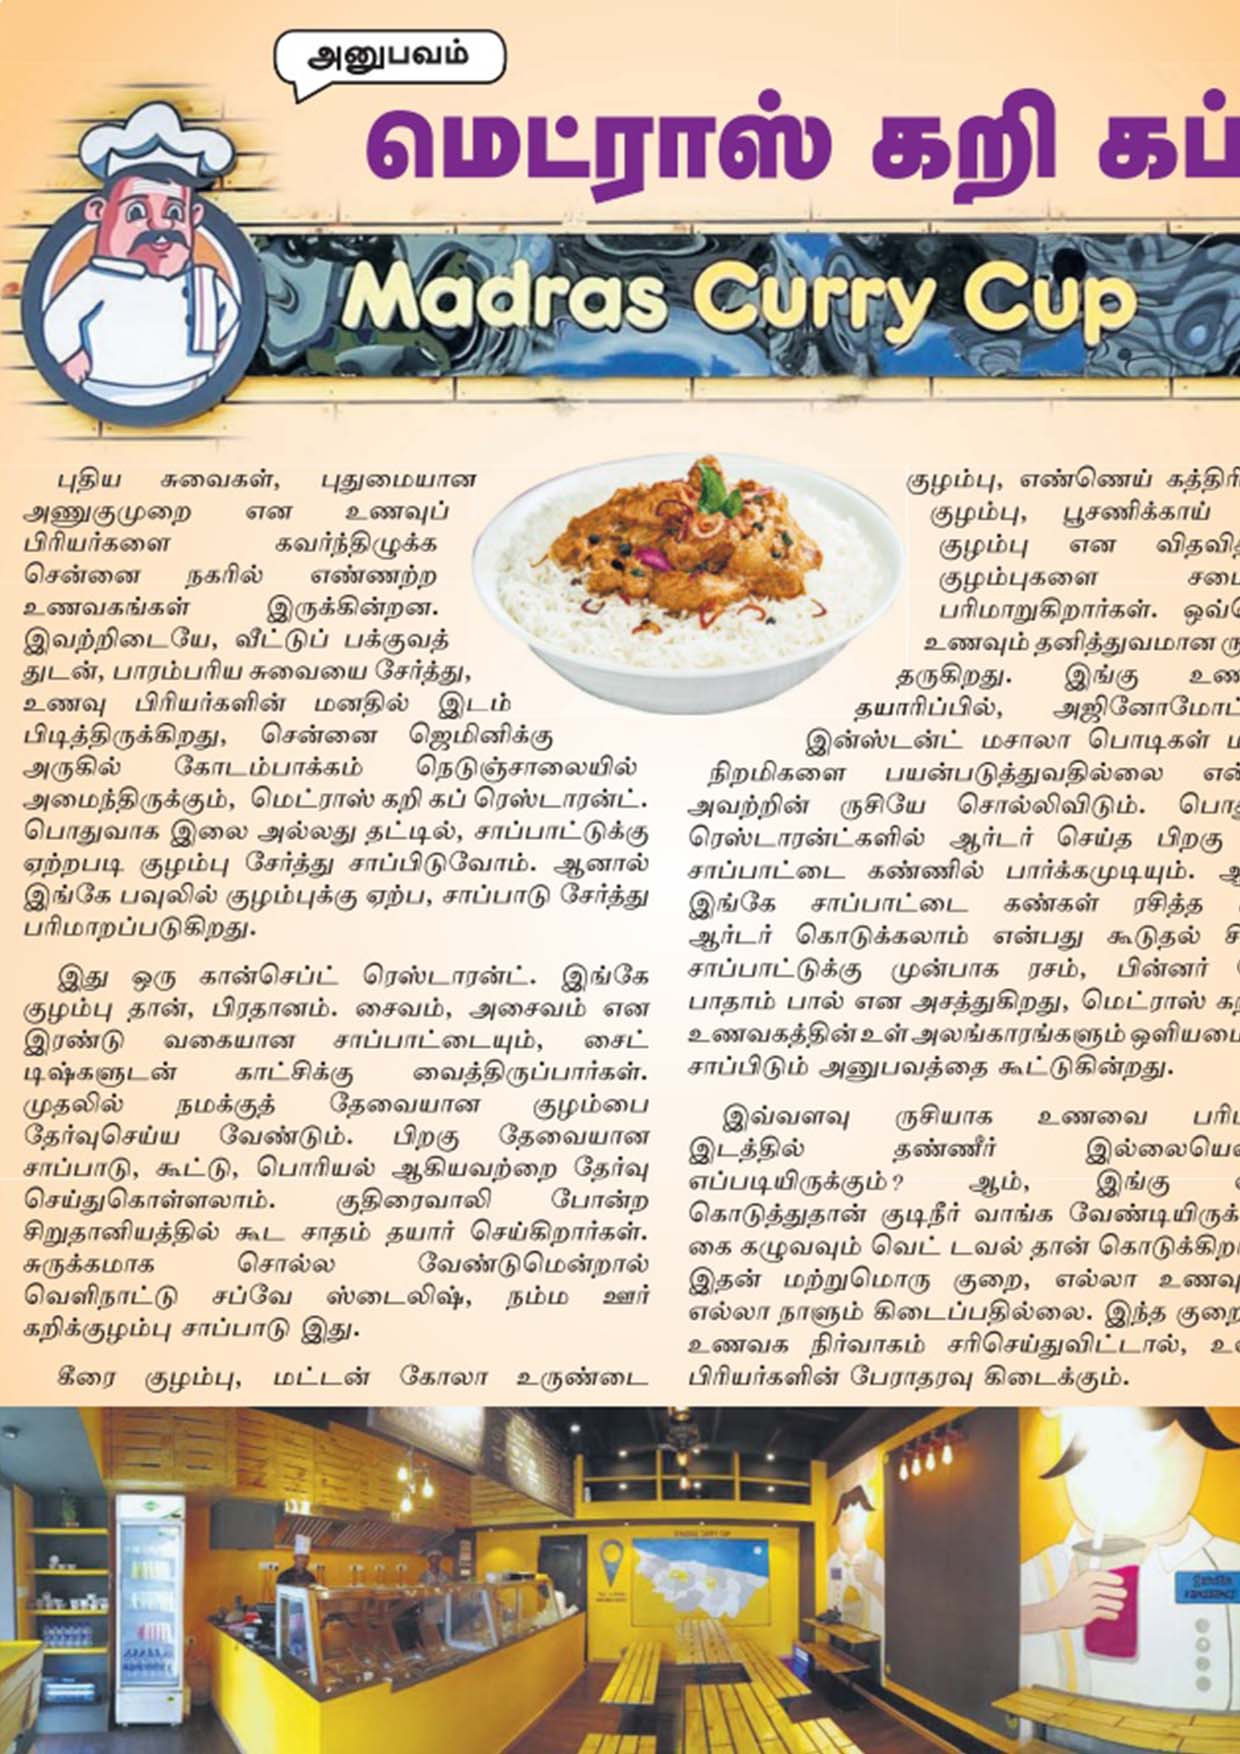 Madras curry cup- Media